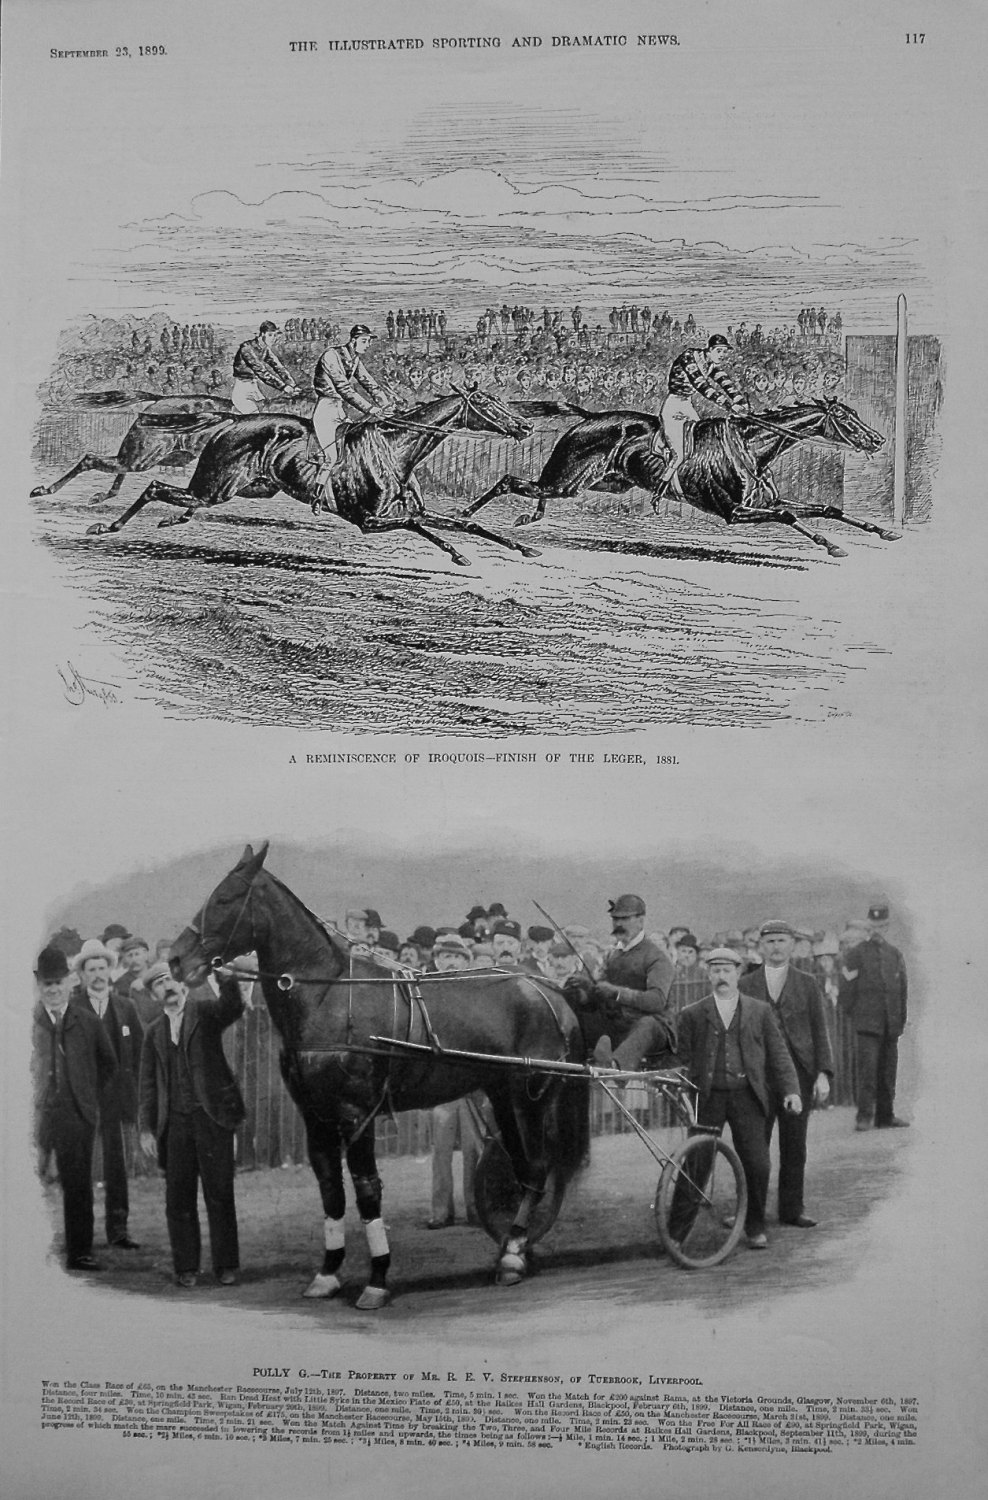 A Reminiscence of Iroquois - Finish of St. Leger, 1881.